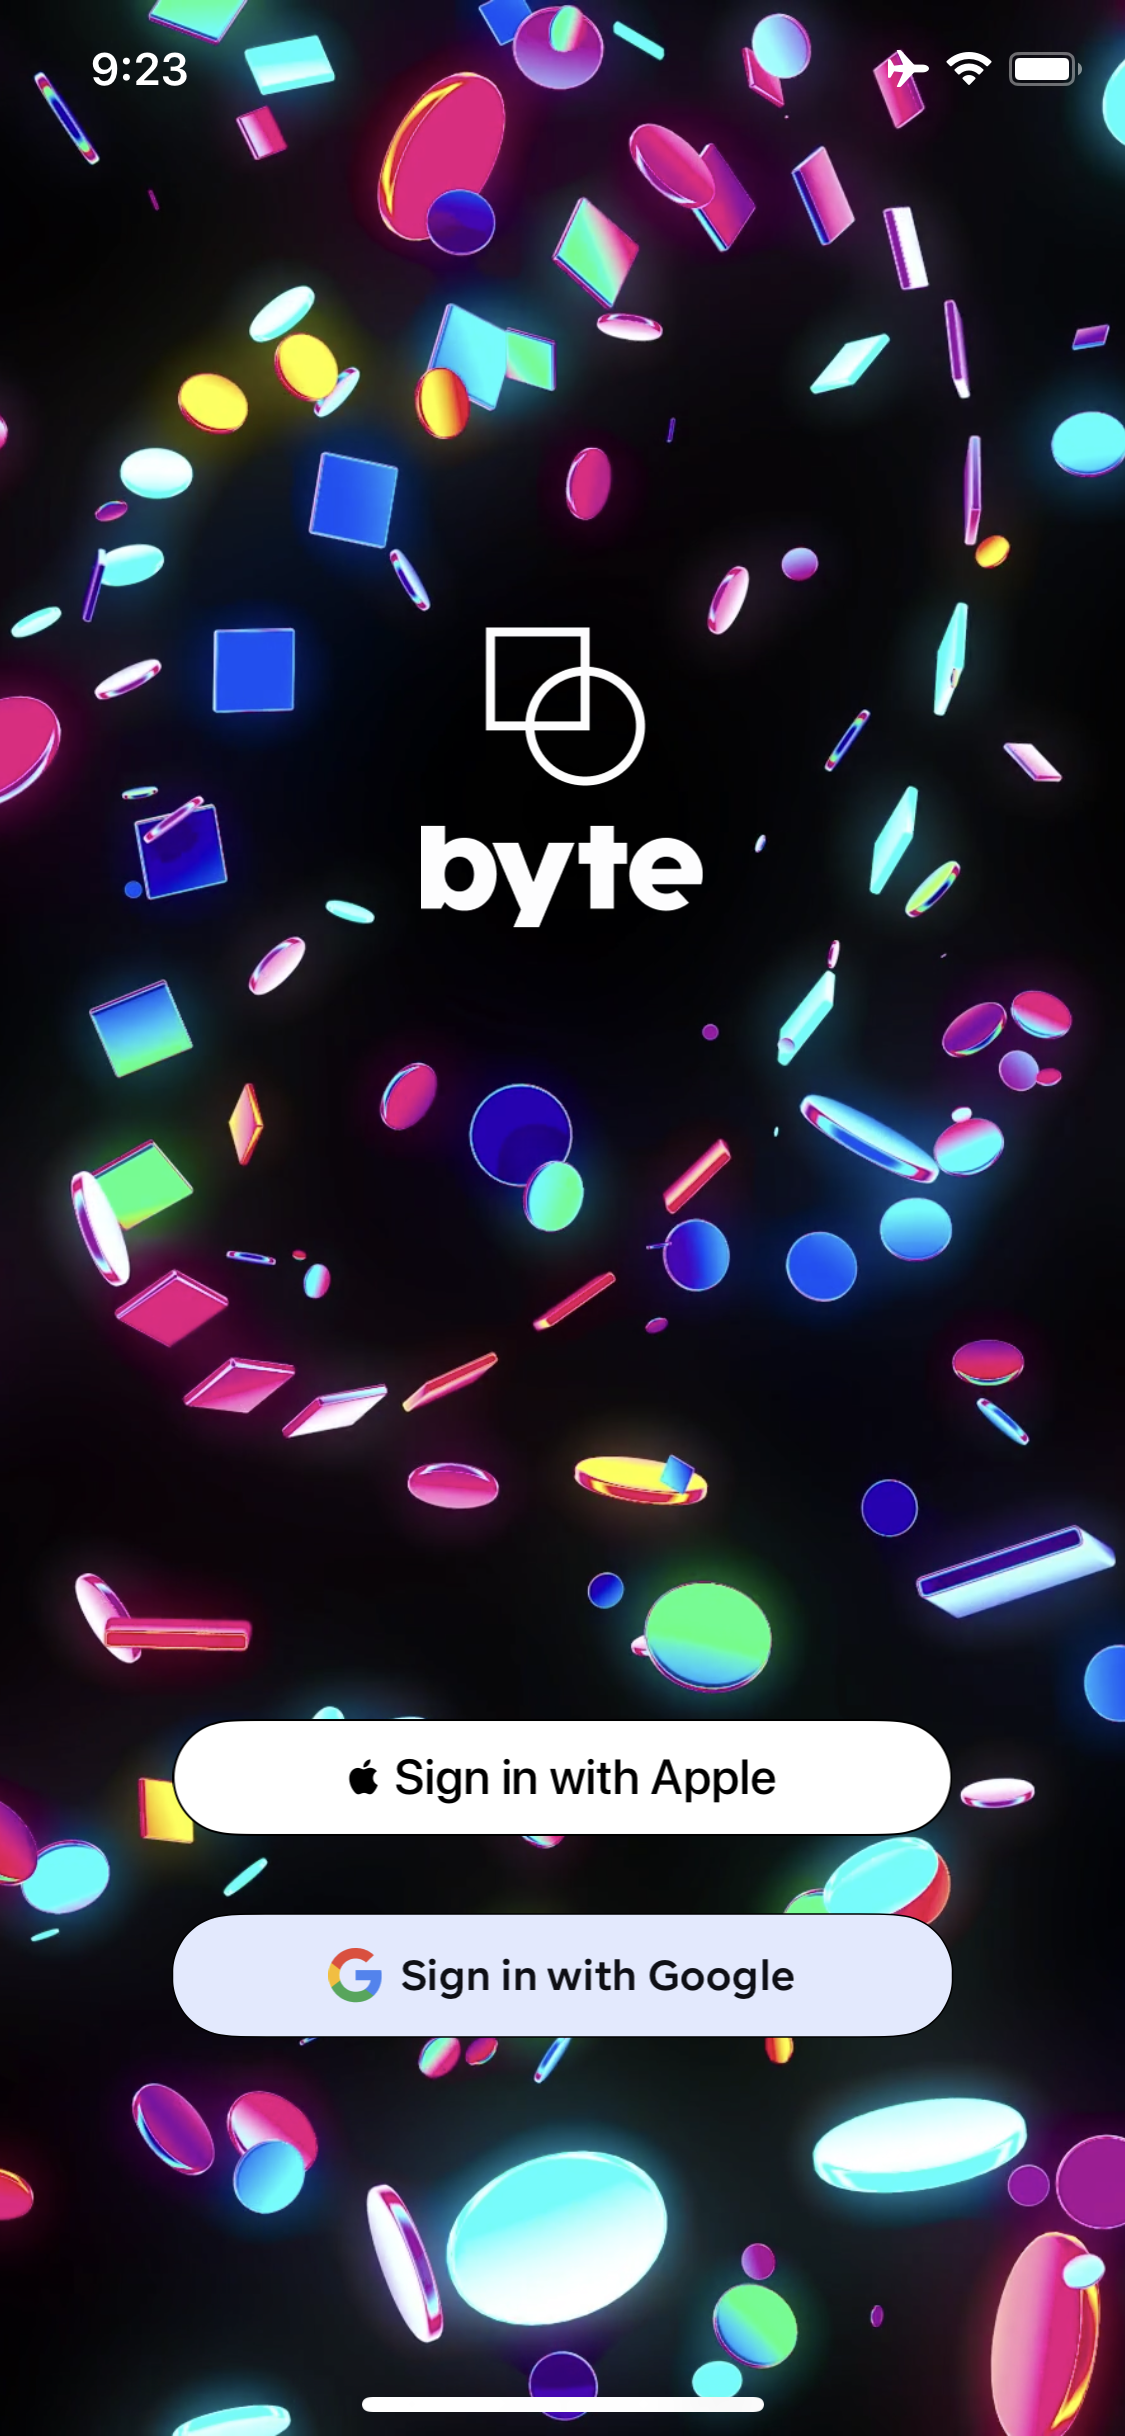 Vine is back! New Vibe called byte launches on iOS and Android! Short video social media Latest news Jan 2020